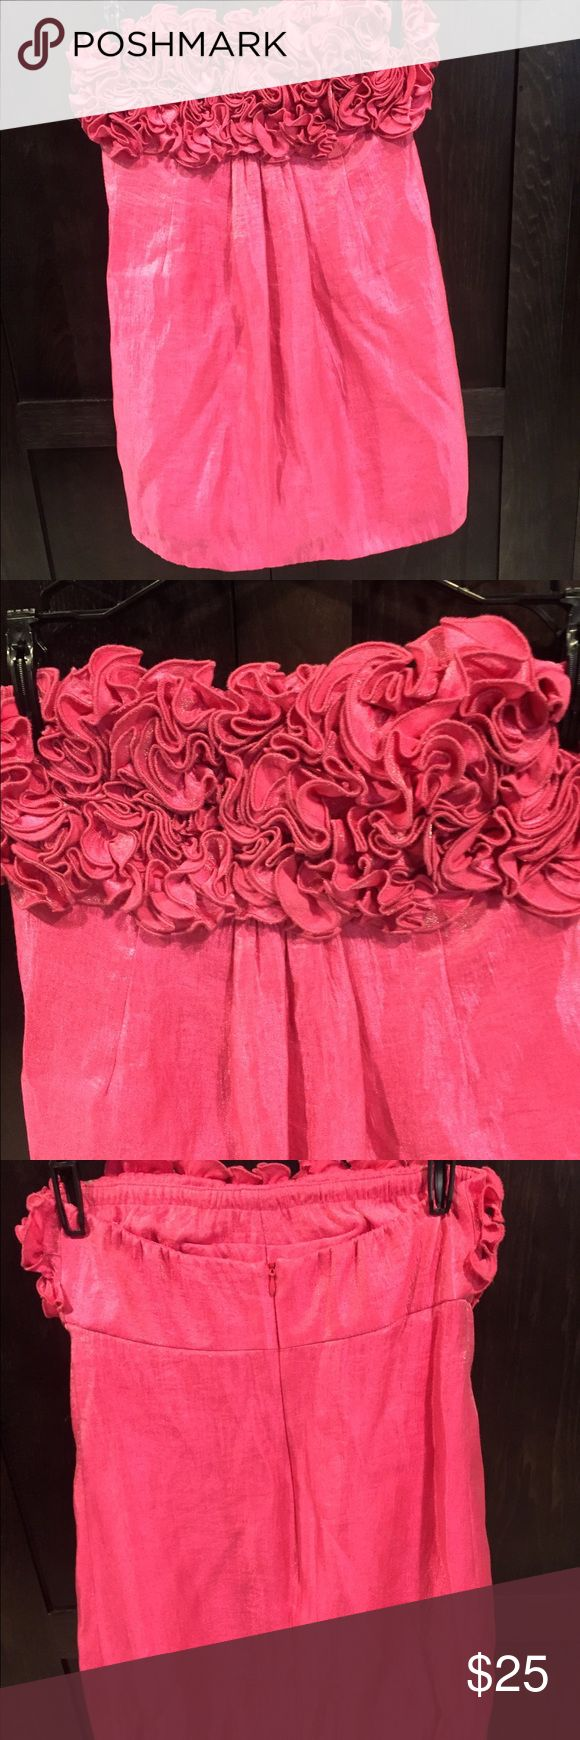 Short hot pink dress Worn once to the Kentucky derby. Short, pink dress. Can be worn dressy or more casual with wedges. Dresses Mini